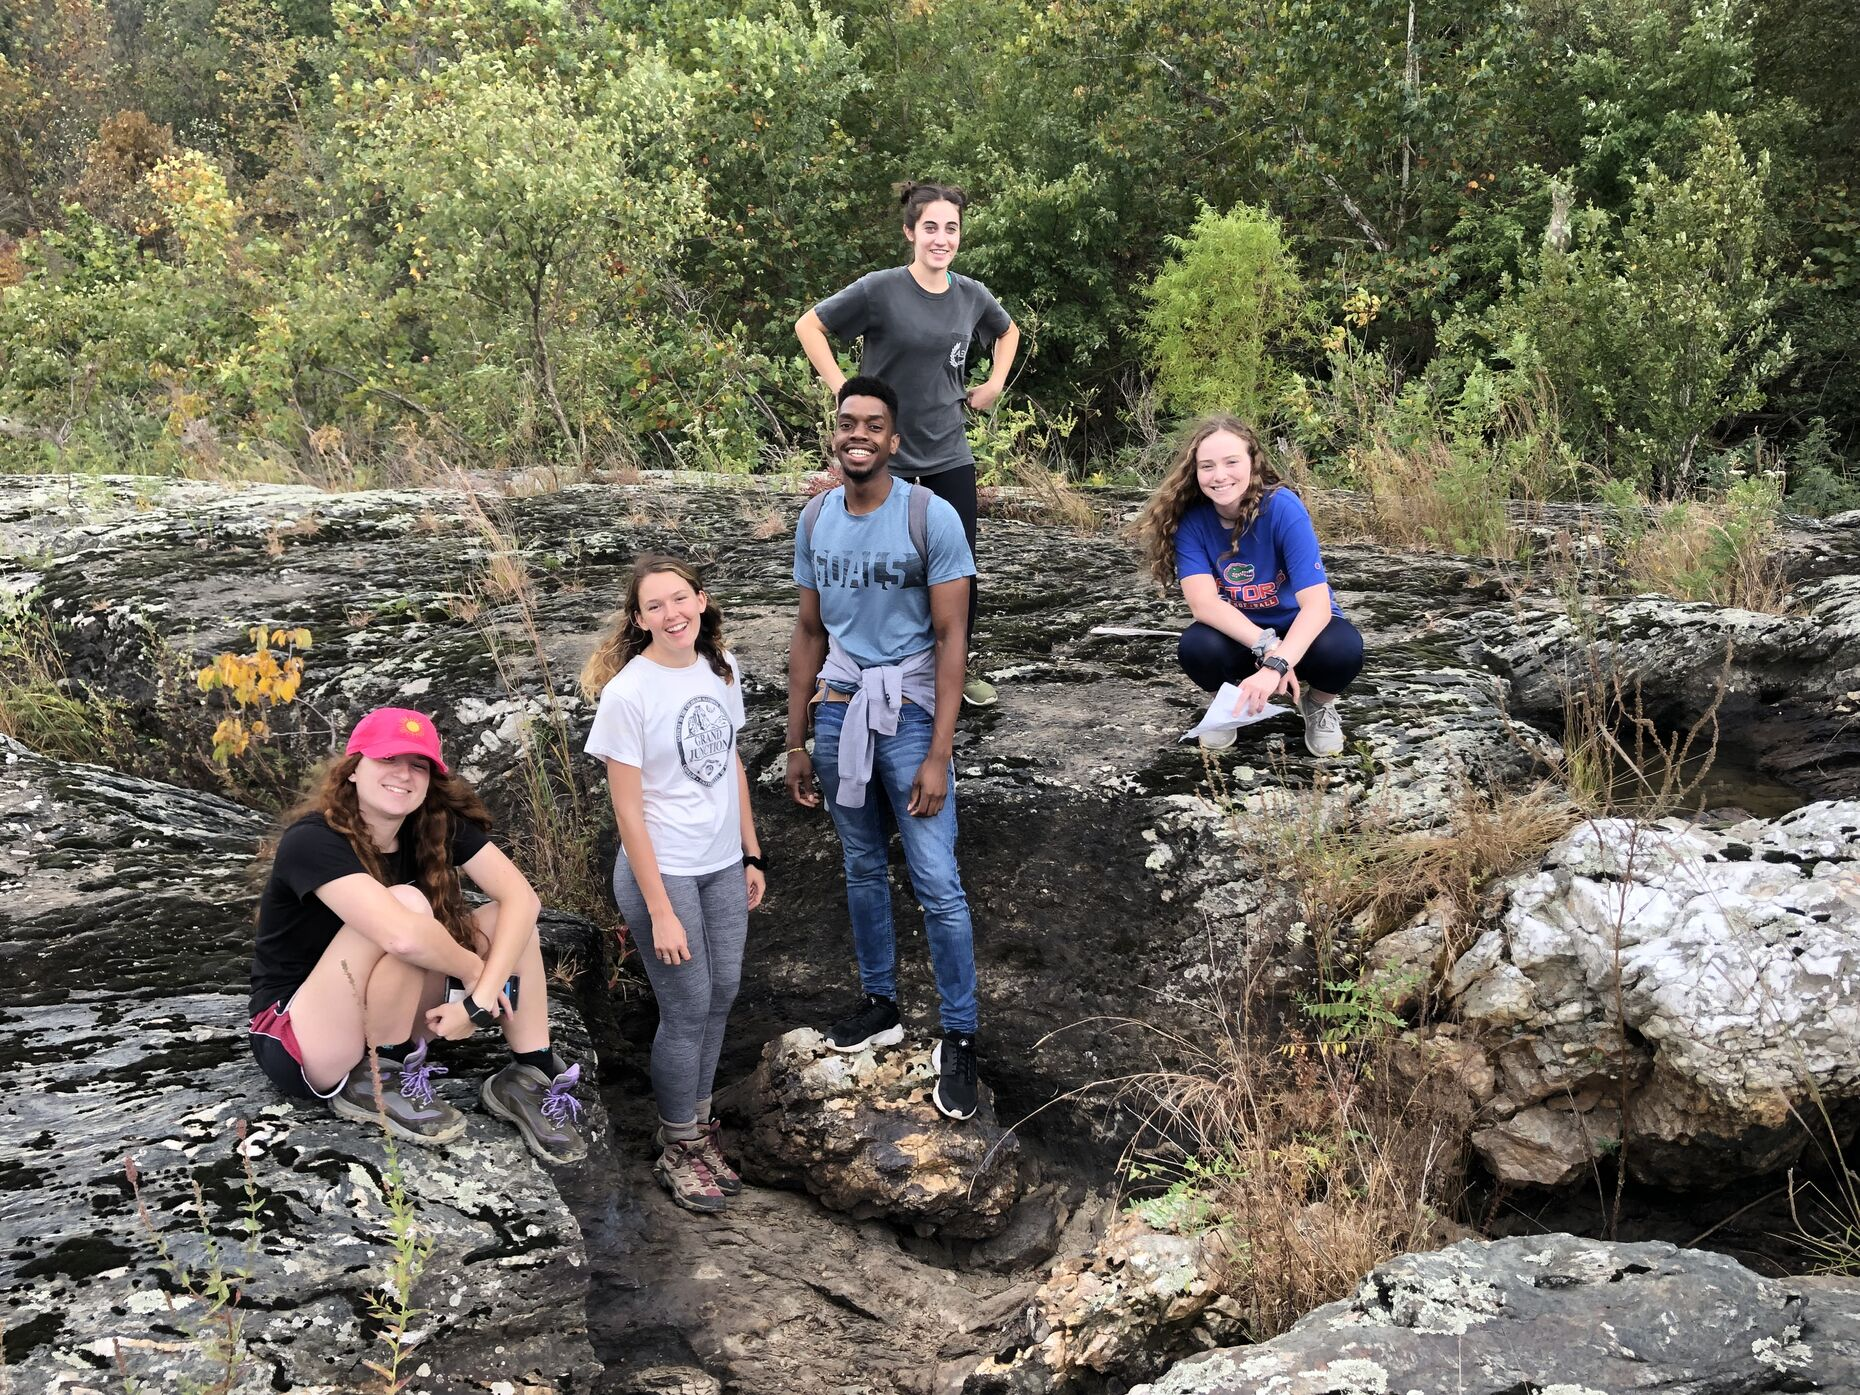 Jevelson Jean '21 (center) with classmates at Holtwood Gorge in Lancaster, PA during class fieldwork in October 2019.